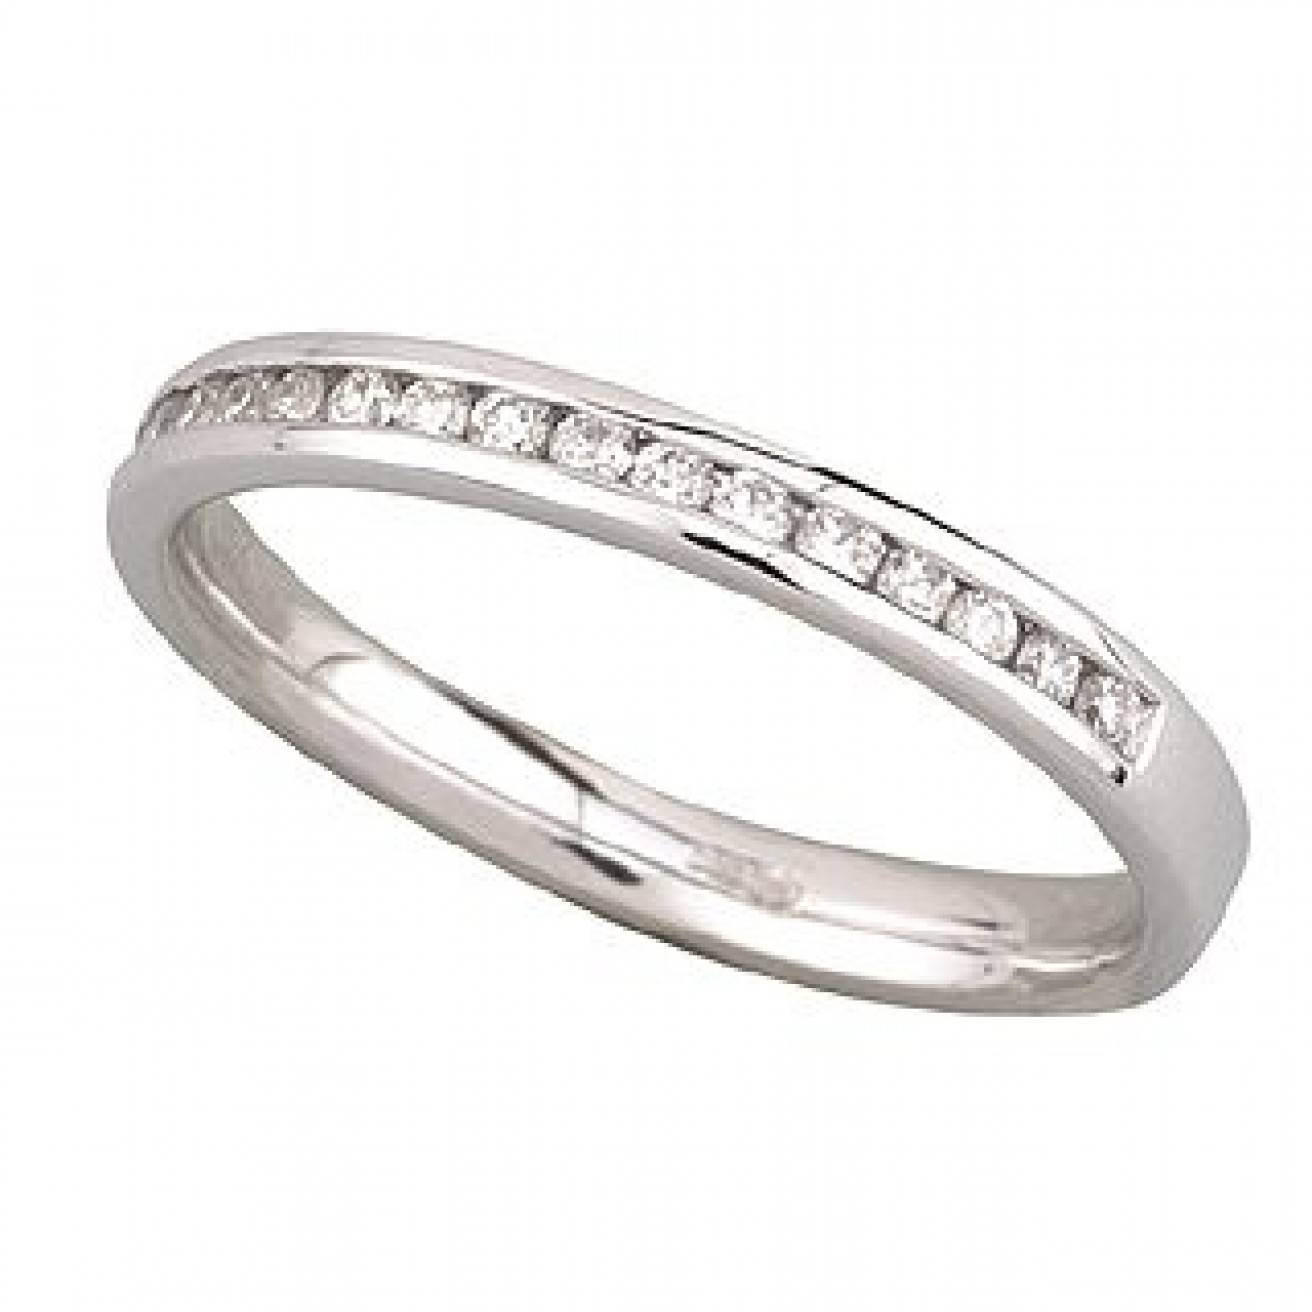 Buy White Gold Wedding Rings Online – Fraser Hart Within White Gold Wedding Rings For Women (View 8 of 15)